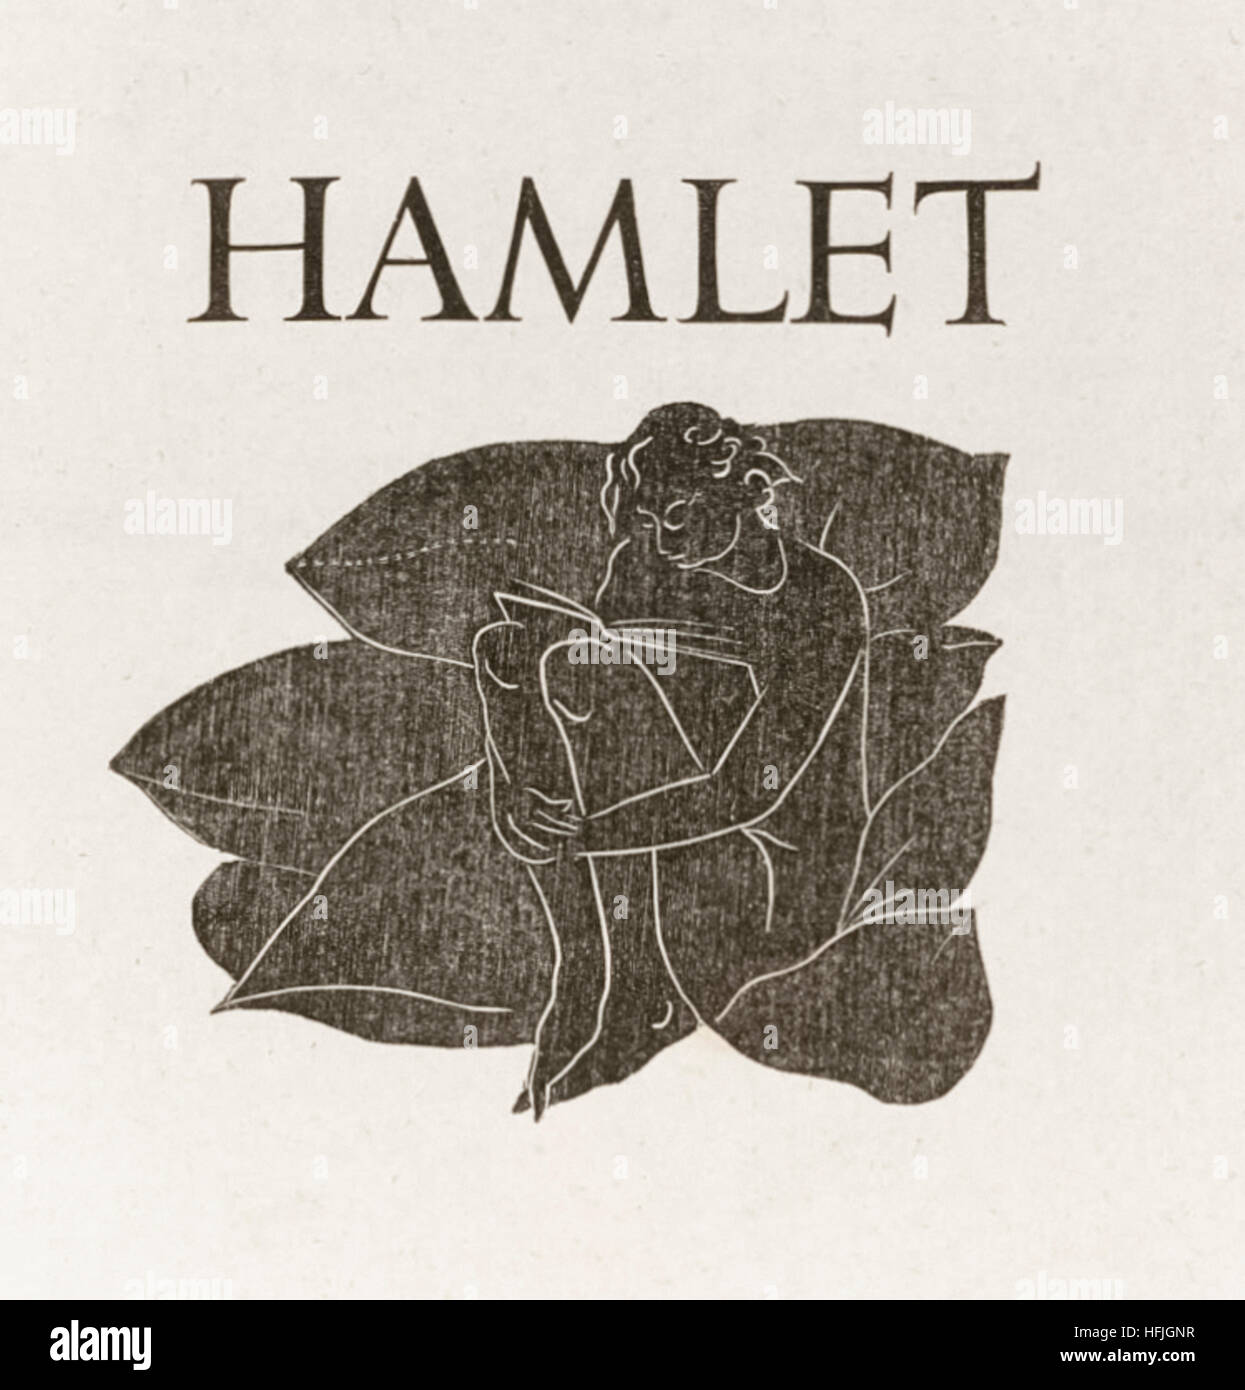 Title page from 'Hamlet' by William Shakespeare (1564-1616) featuring a woodcut by Eric Gill (1882-1940). See description - Stock Image